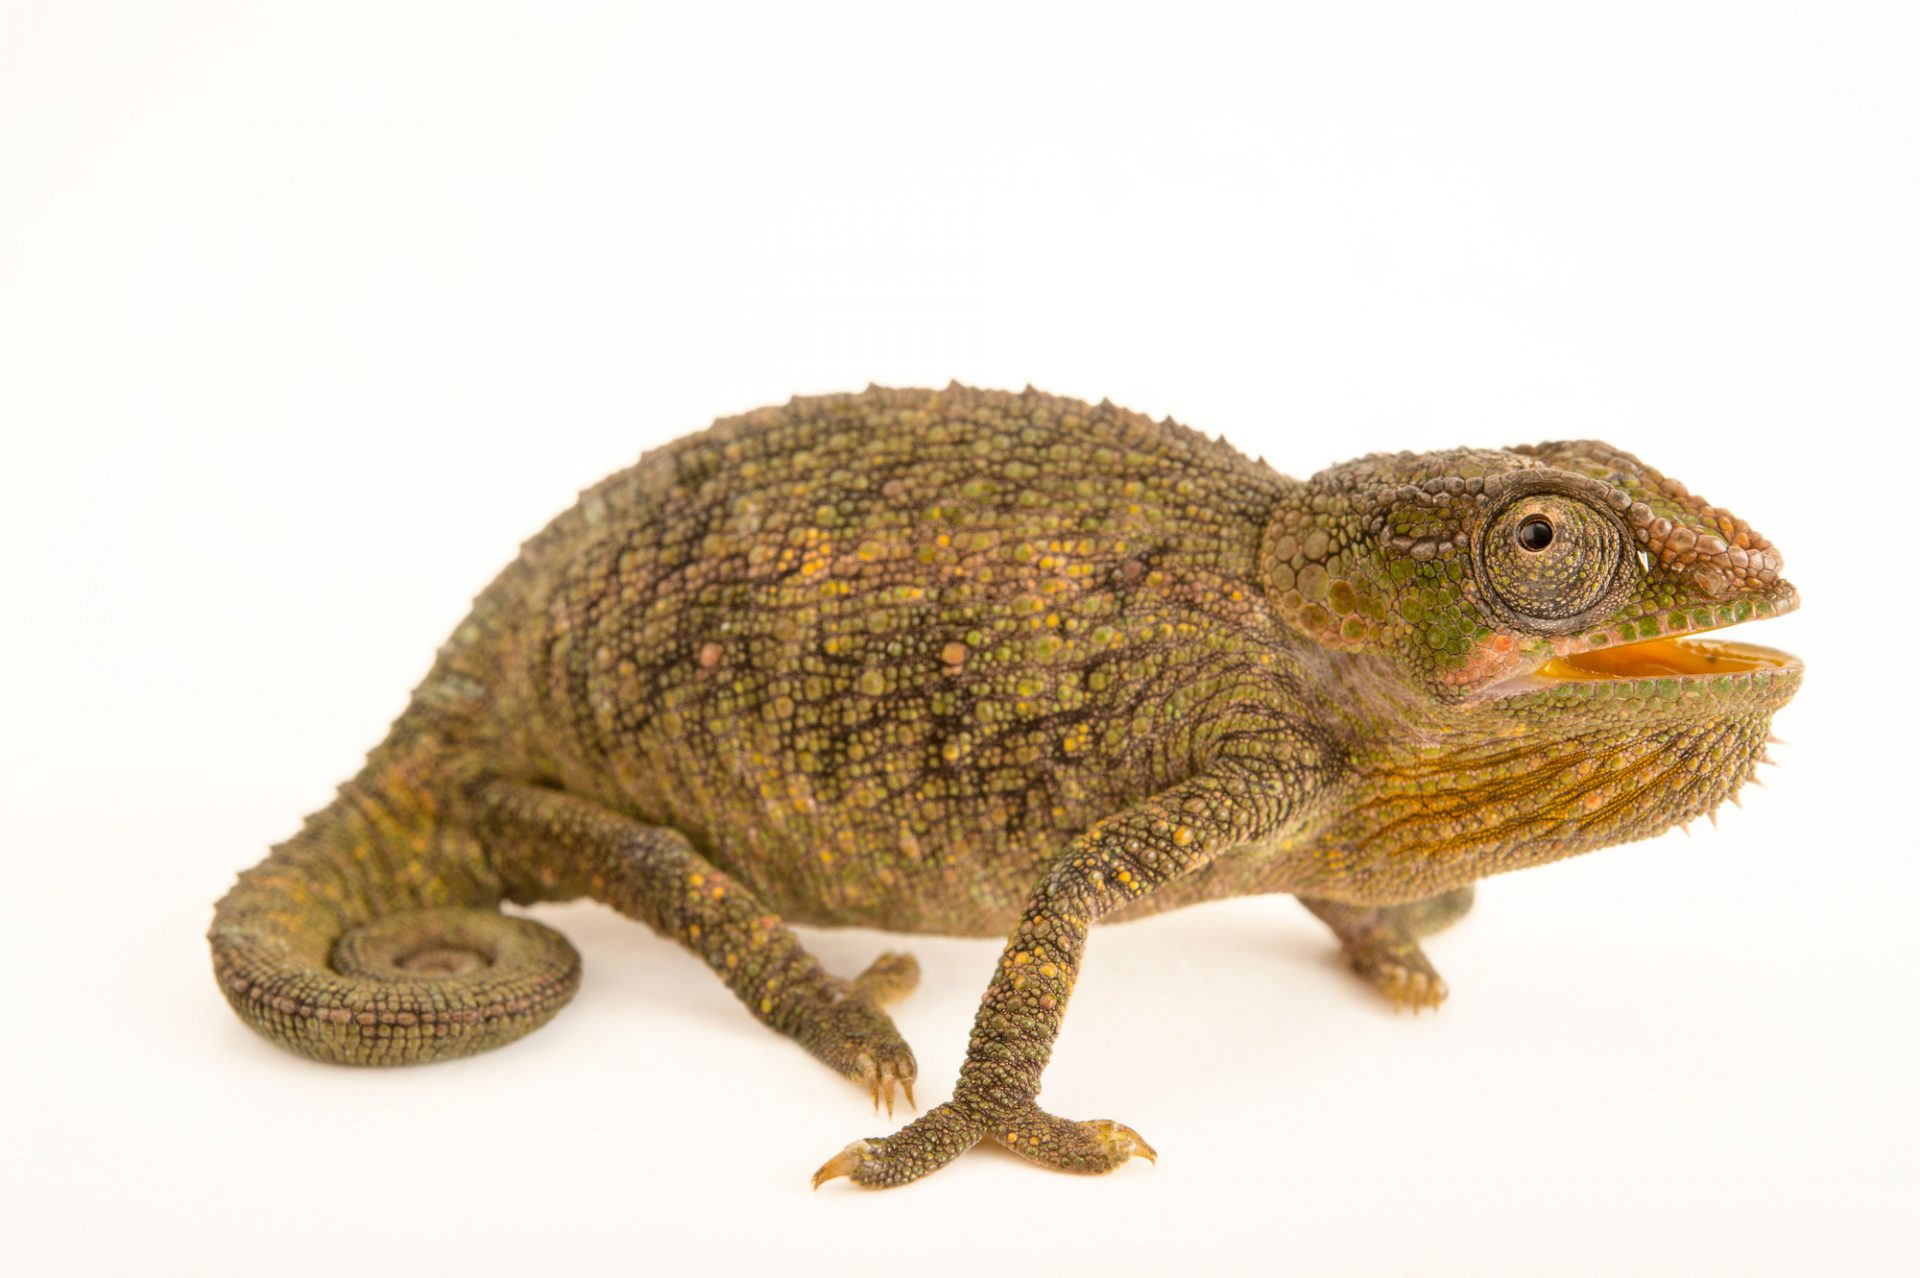 Photo: A chameleon (Calumma hilleniusi) in Madagascar.